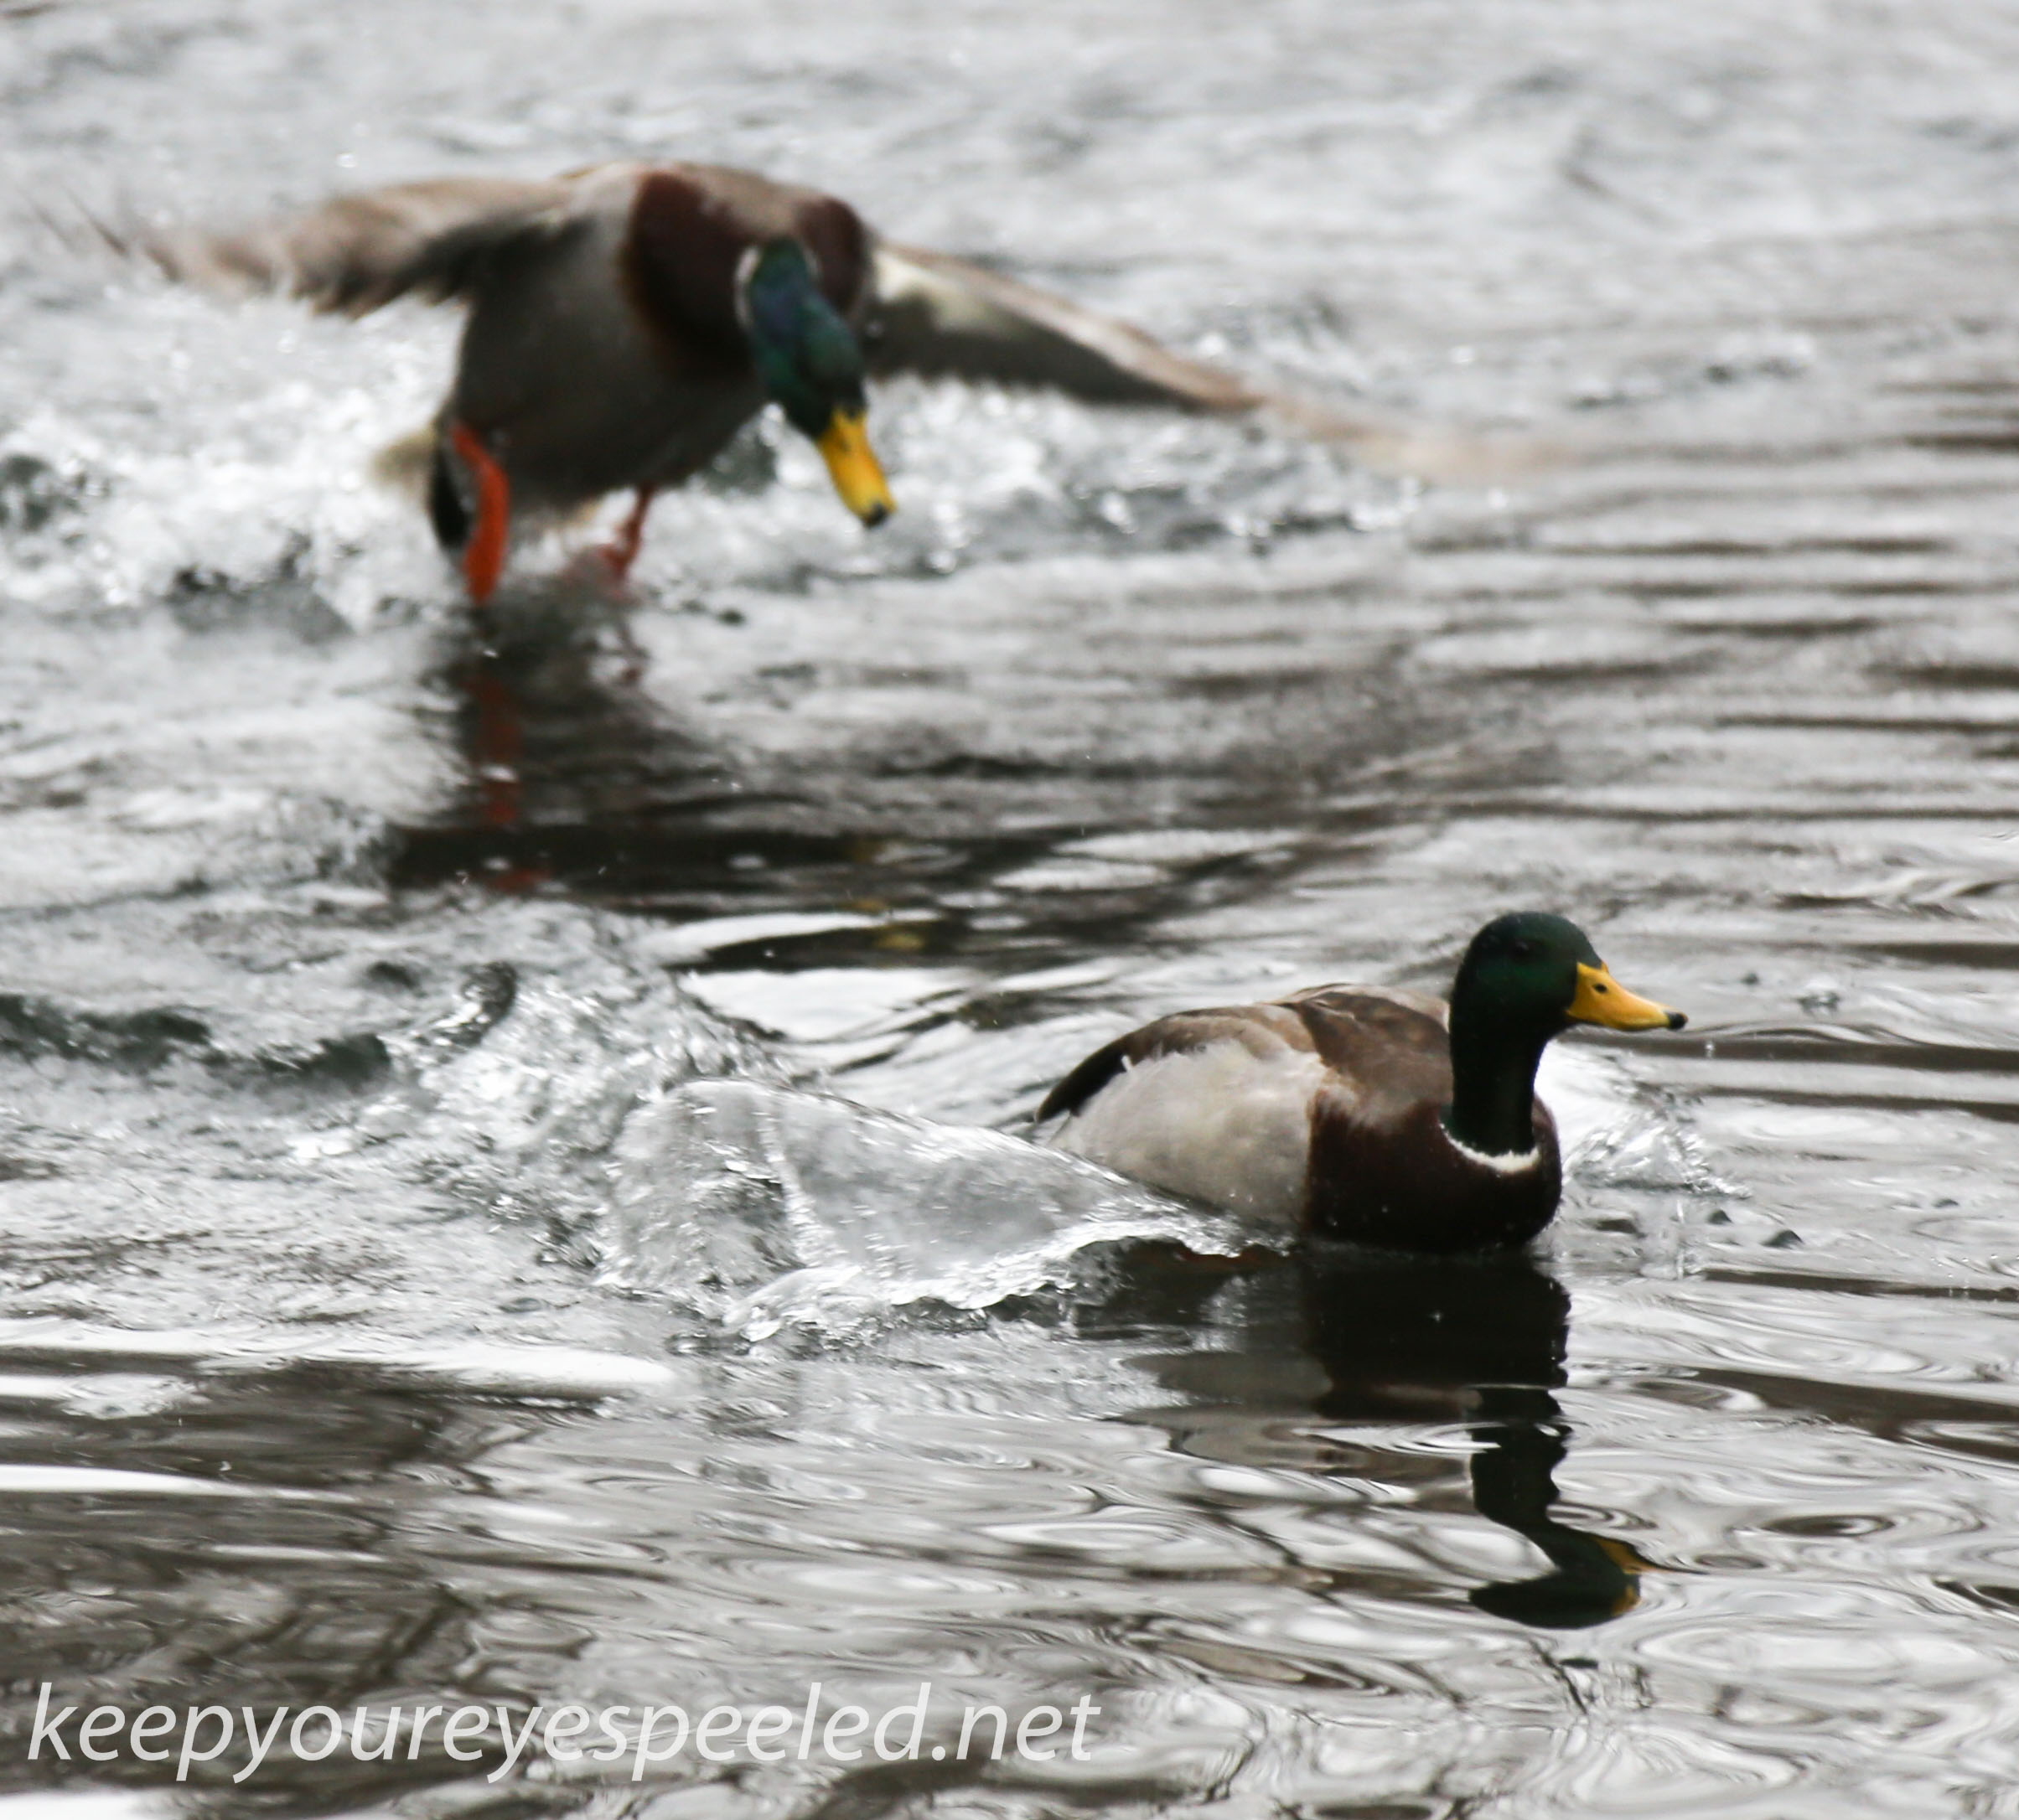 Open Water In January Means A Lot Of Ducks At The